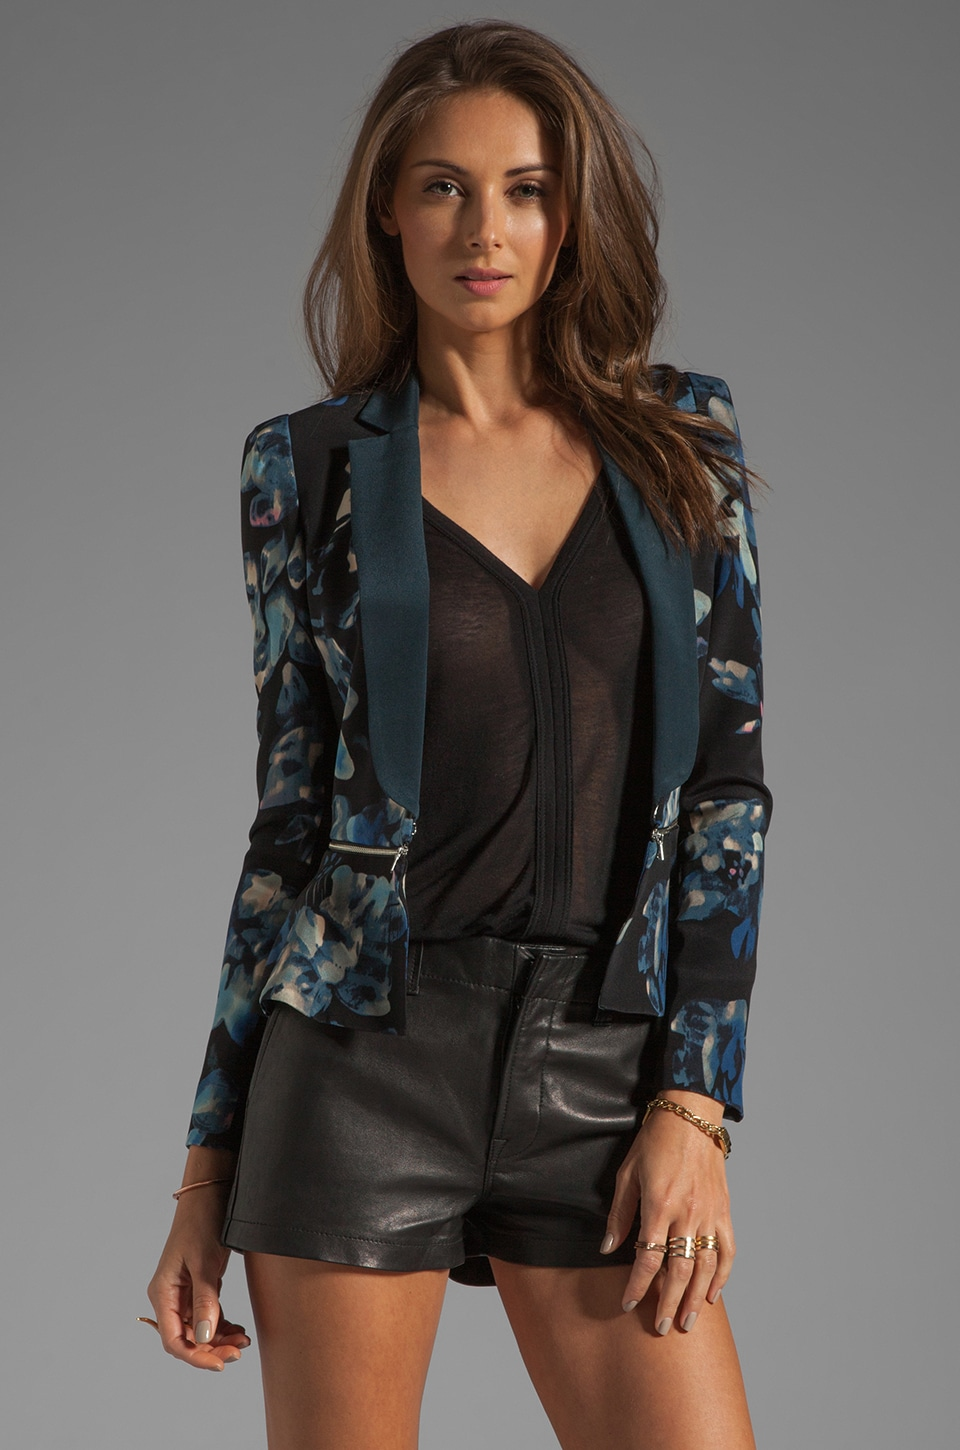 Rebecca Taylor Hawaii Zip Jacket in Black